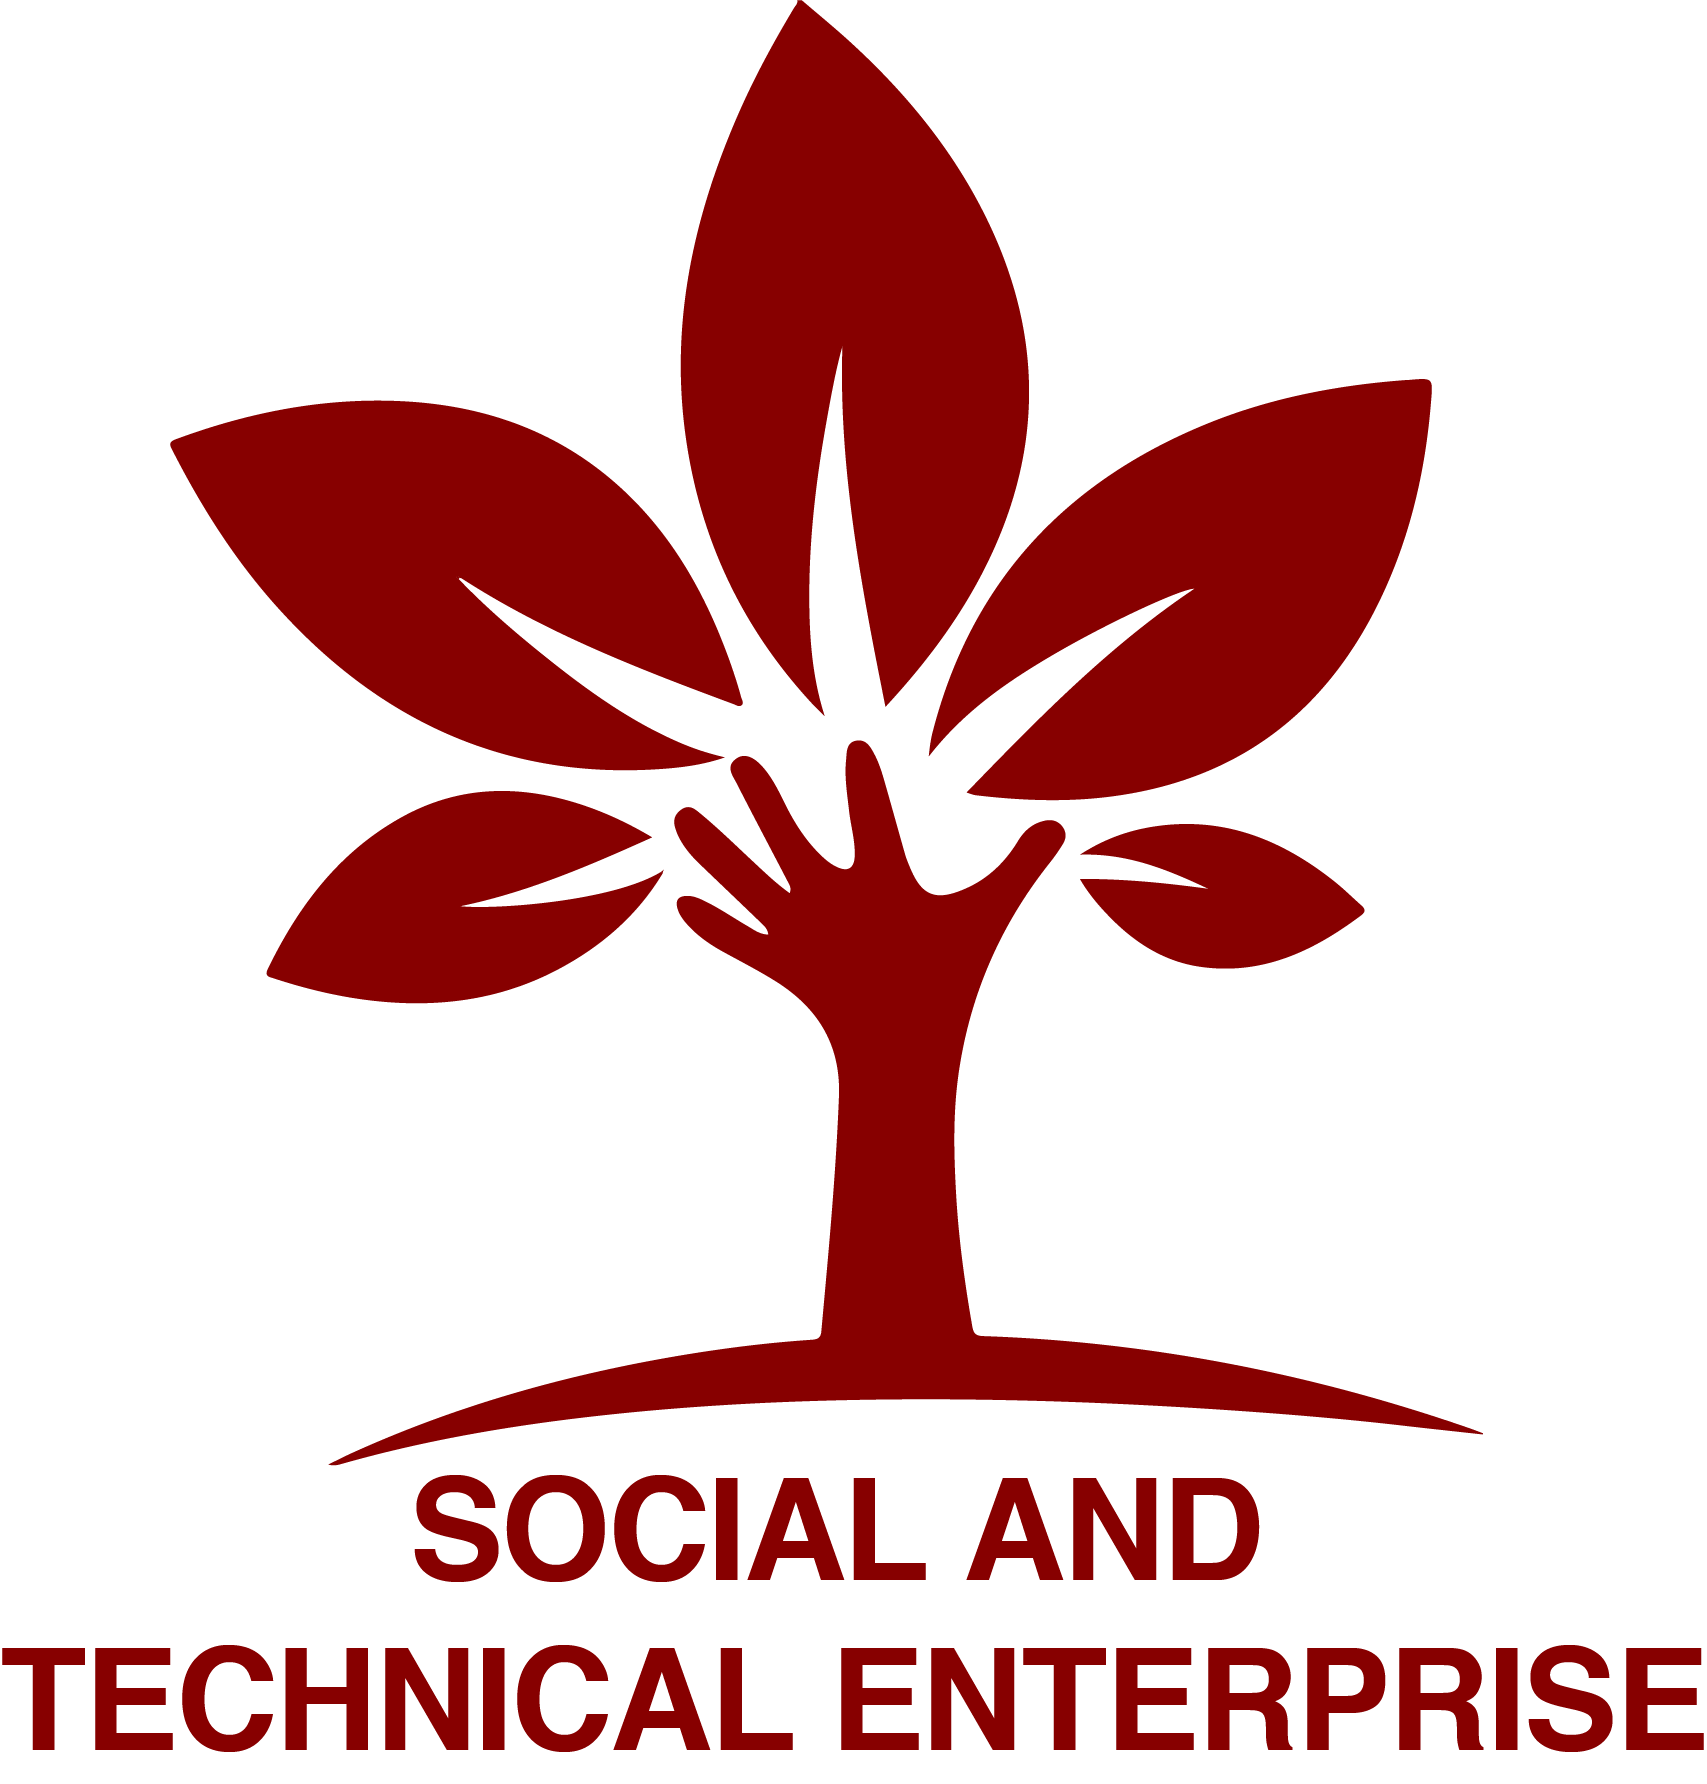 Social-and-Technical-Enterprise-1